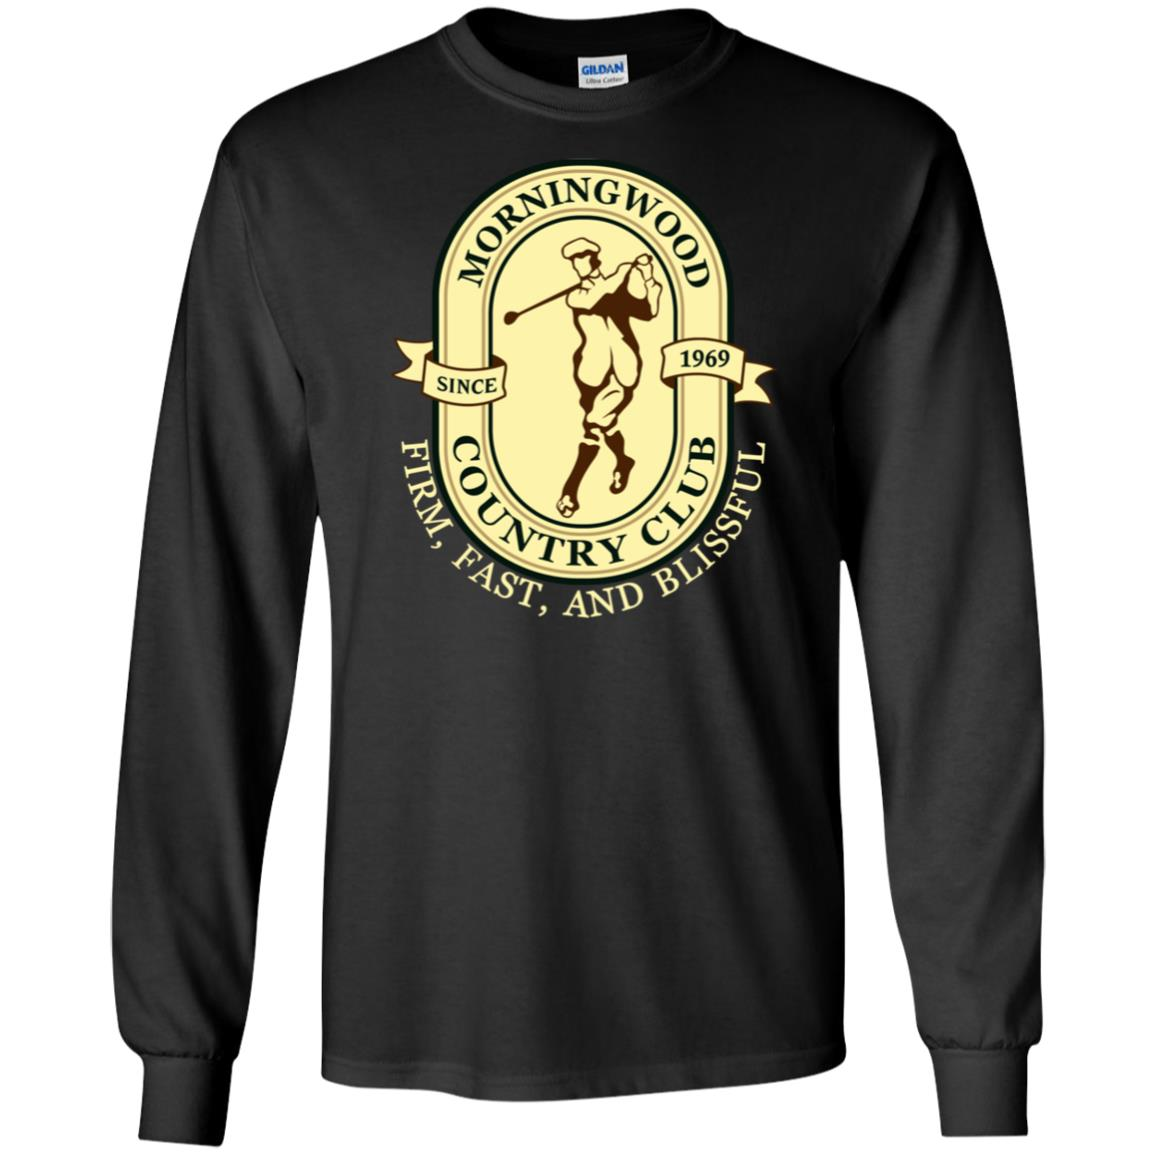 Morningwood C.C. Long Sleeve